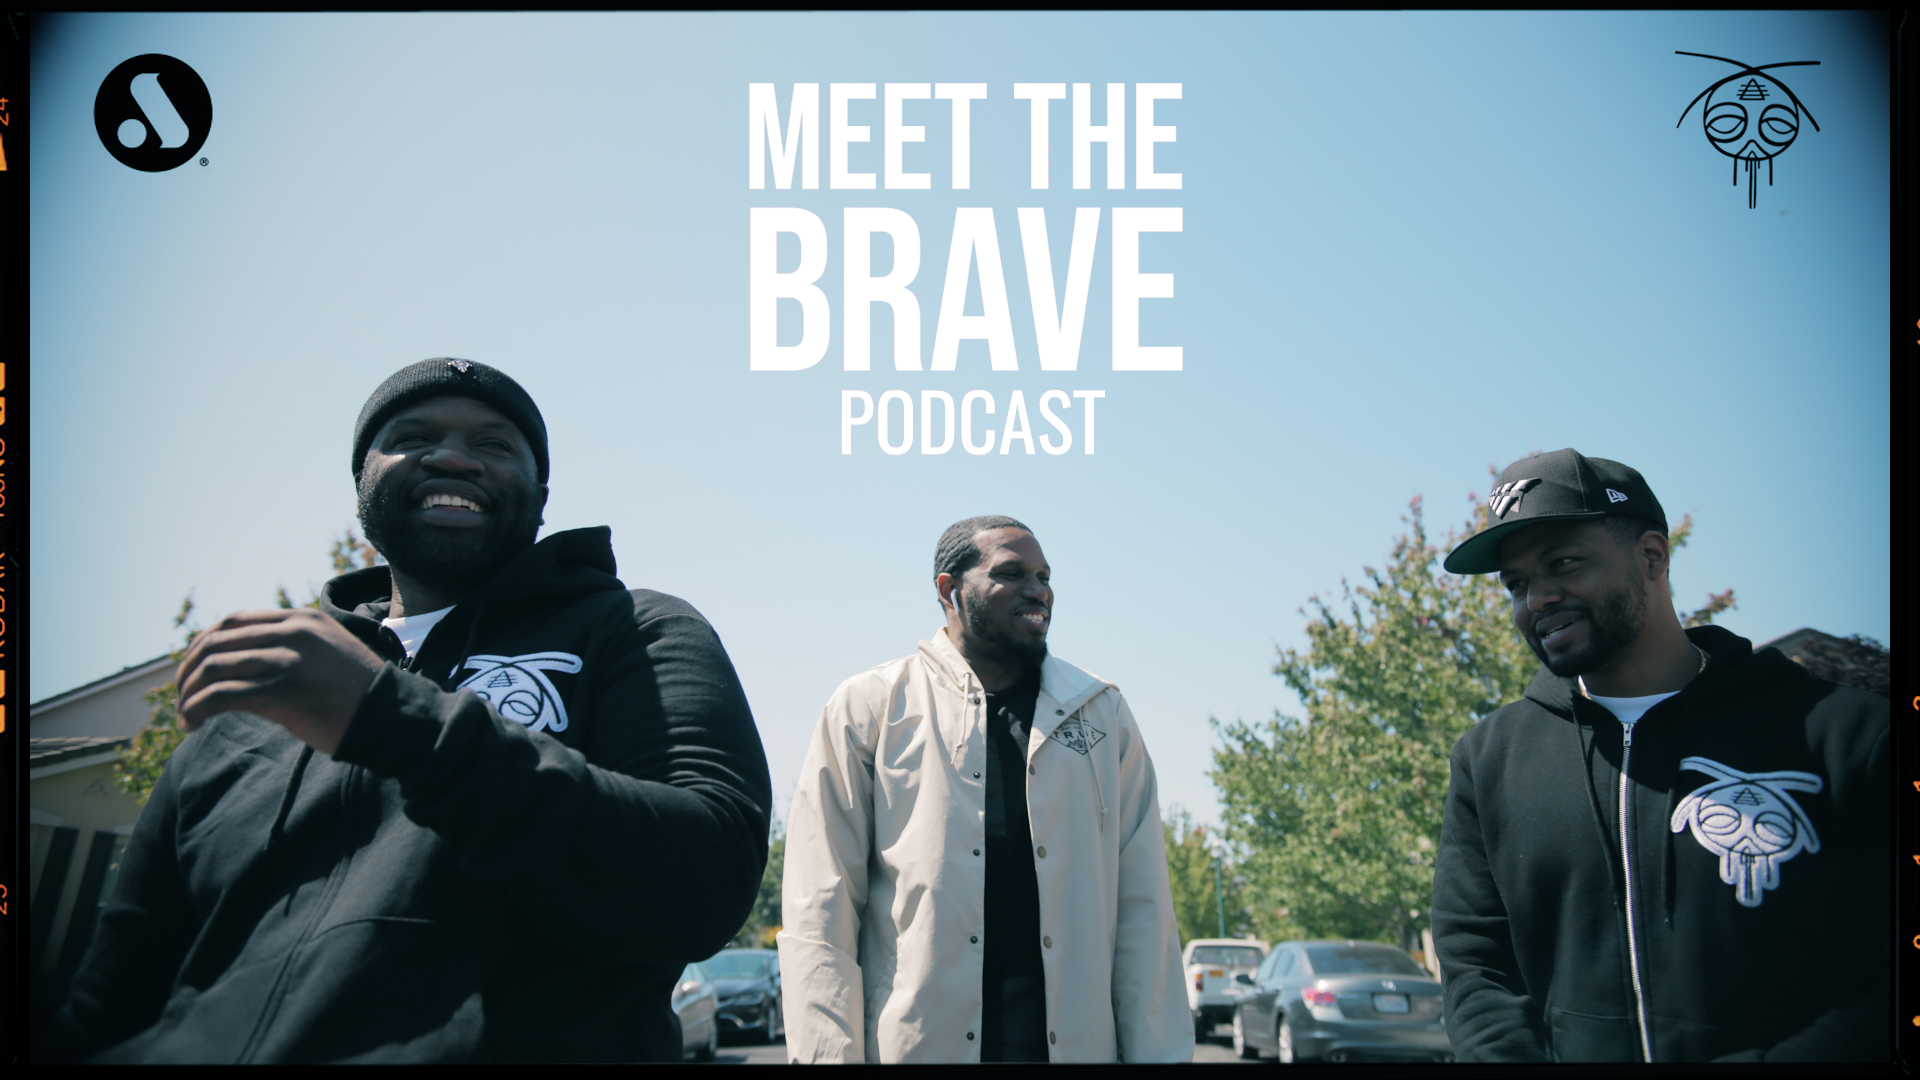 MEET THE BRAVE PODCAST (Credit: Salvatore Fullmore)